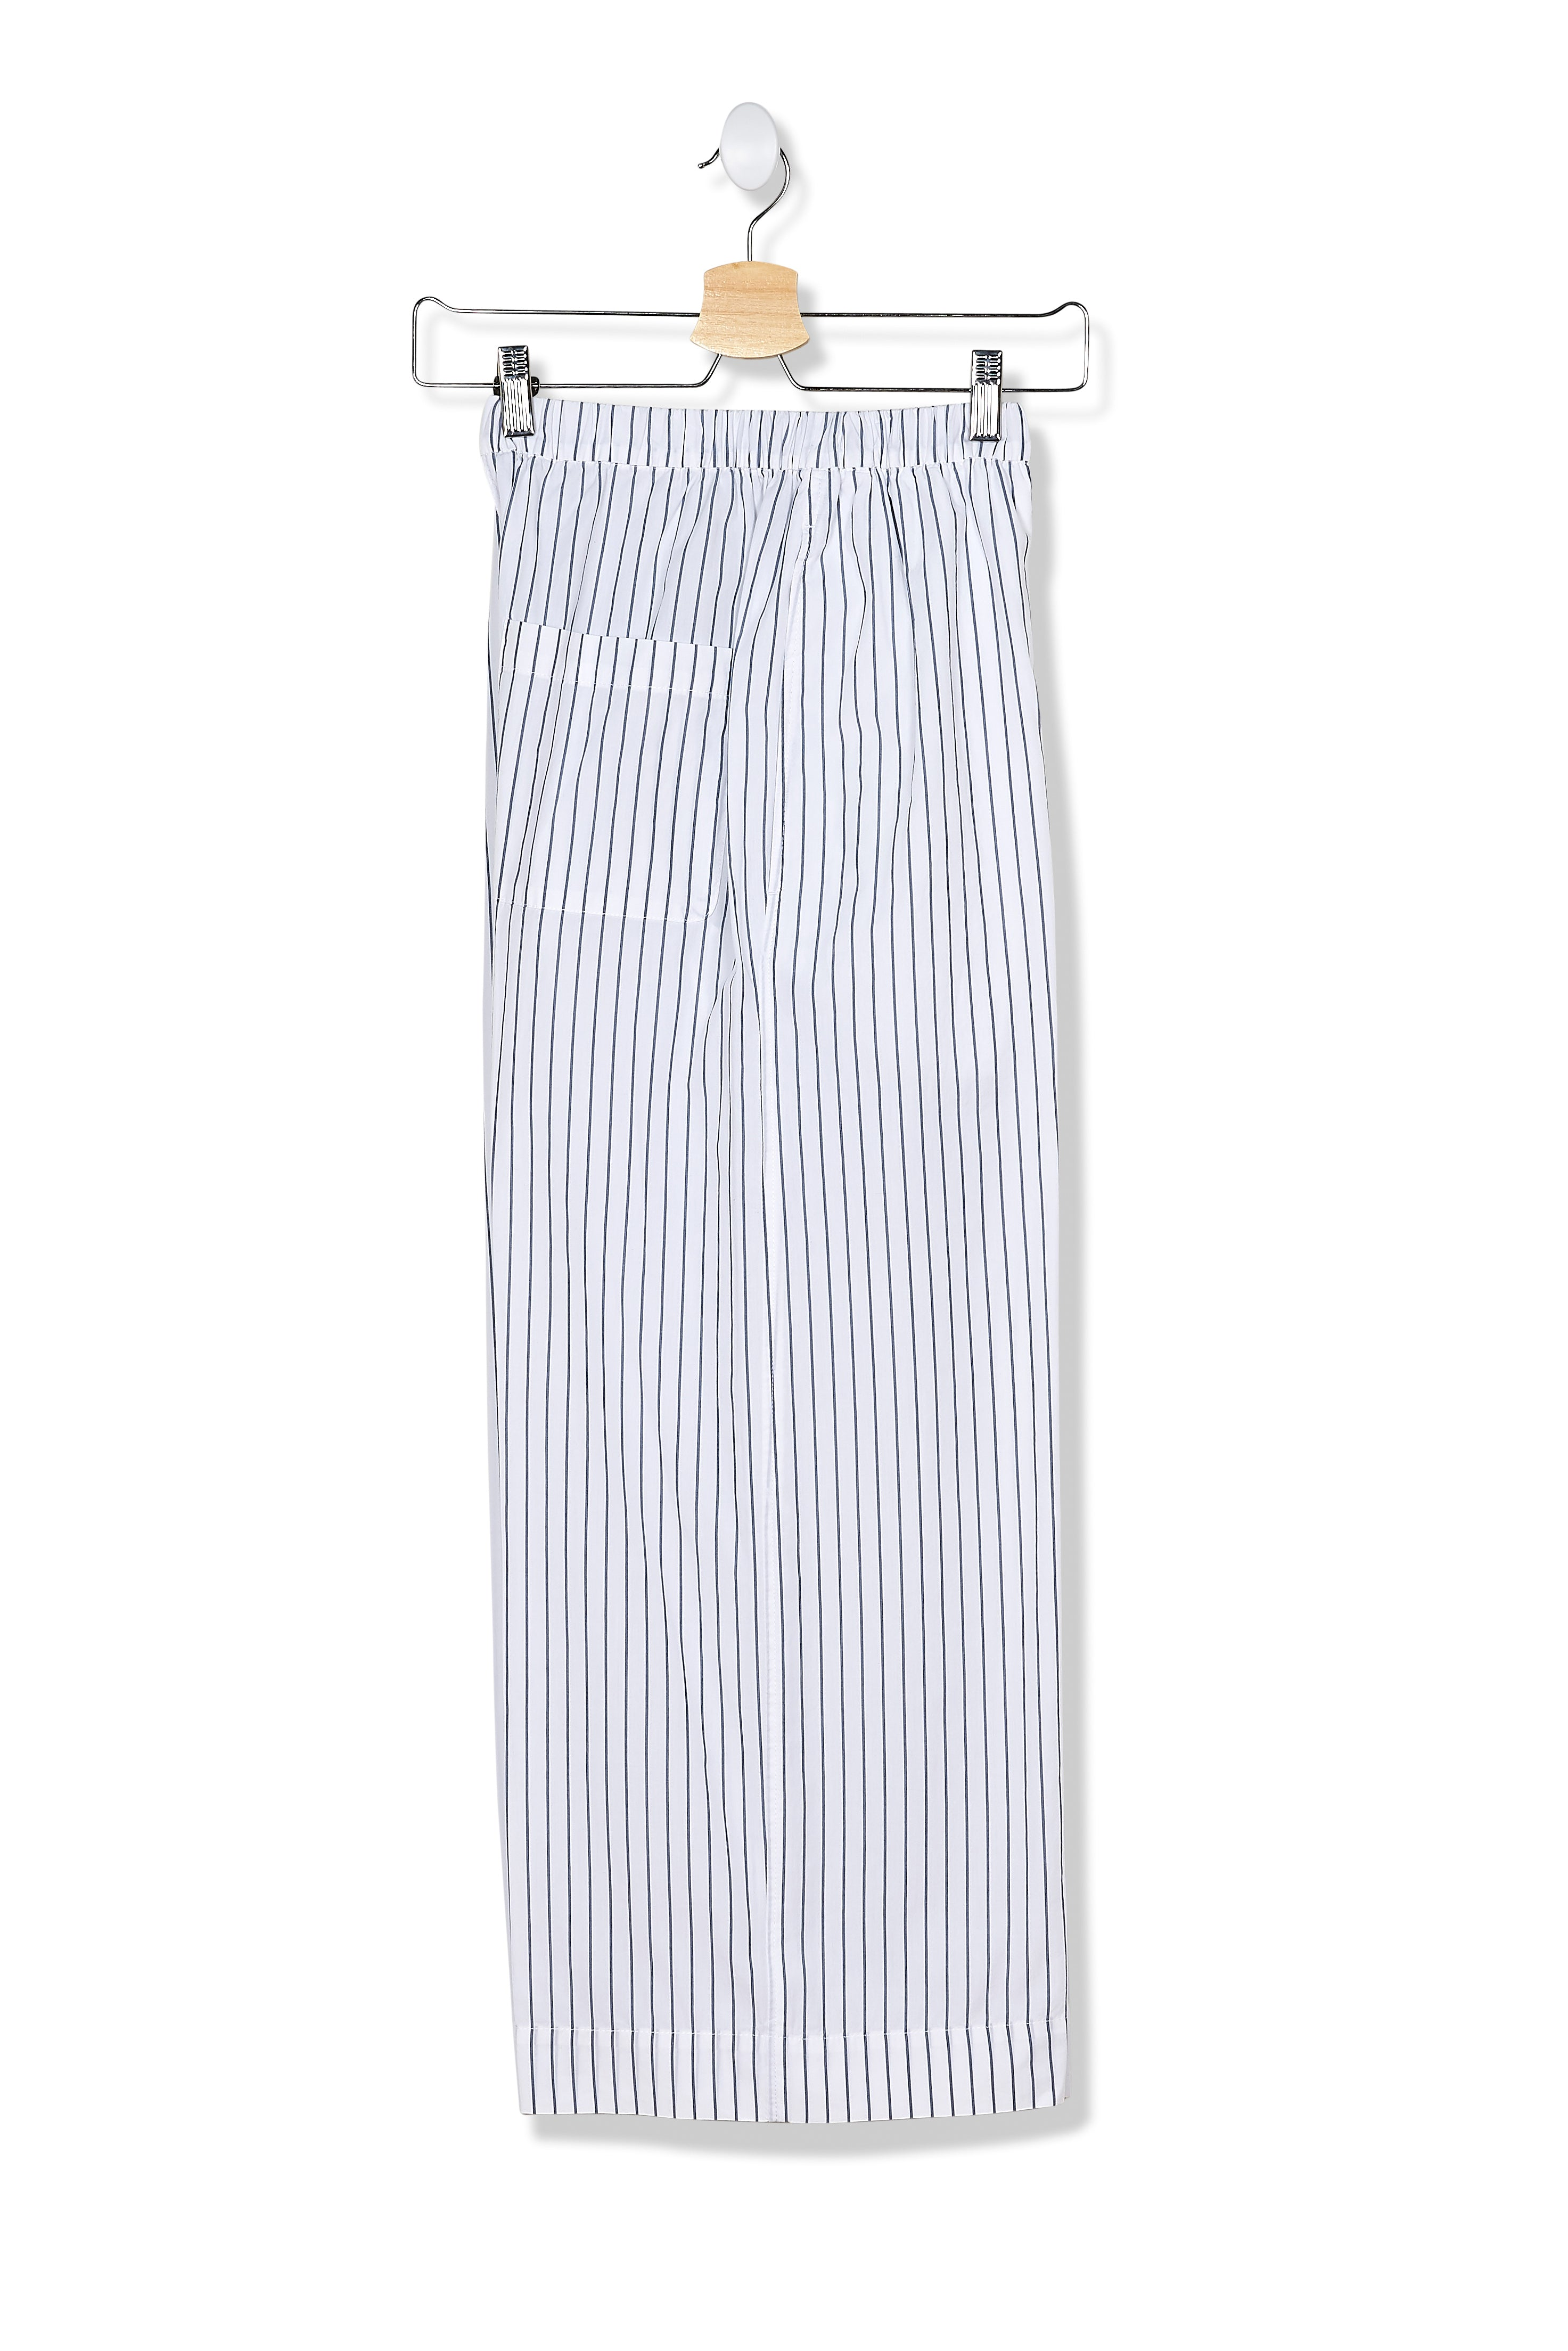 B855 Striped Pants